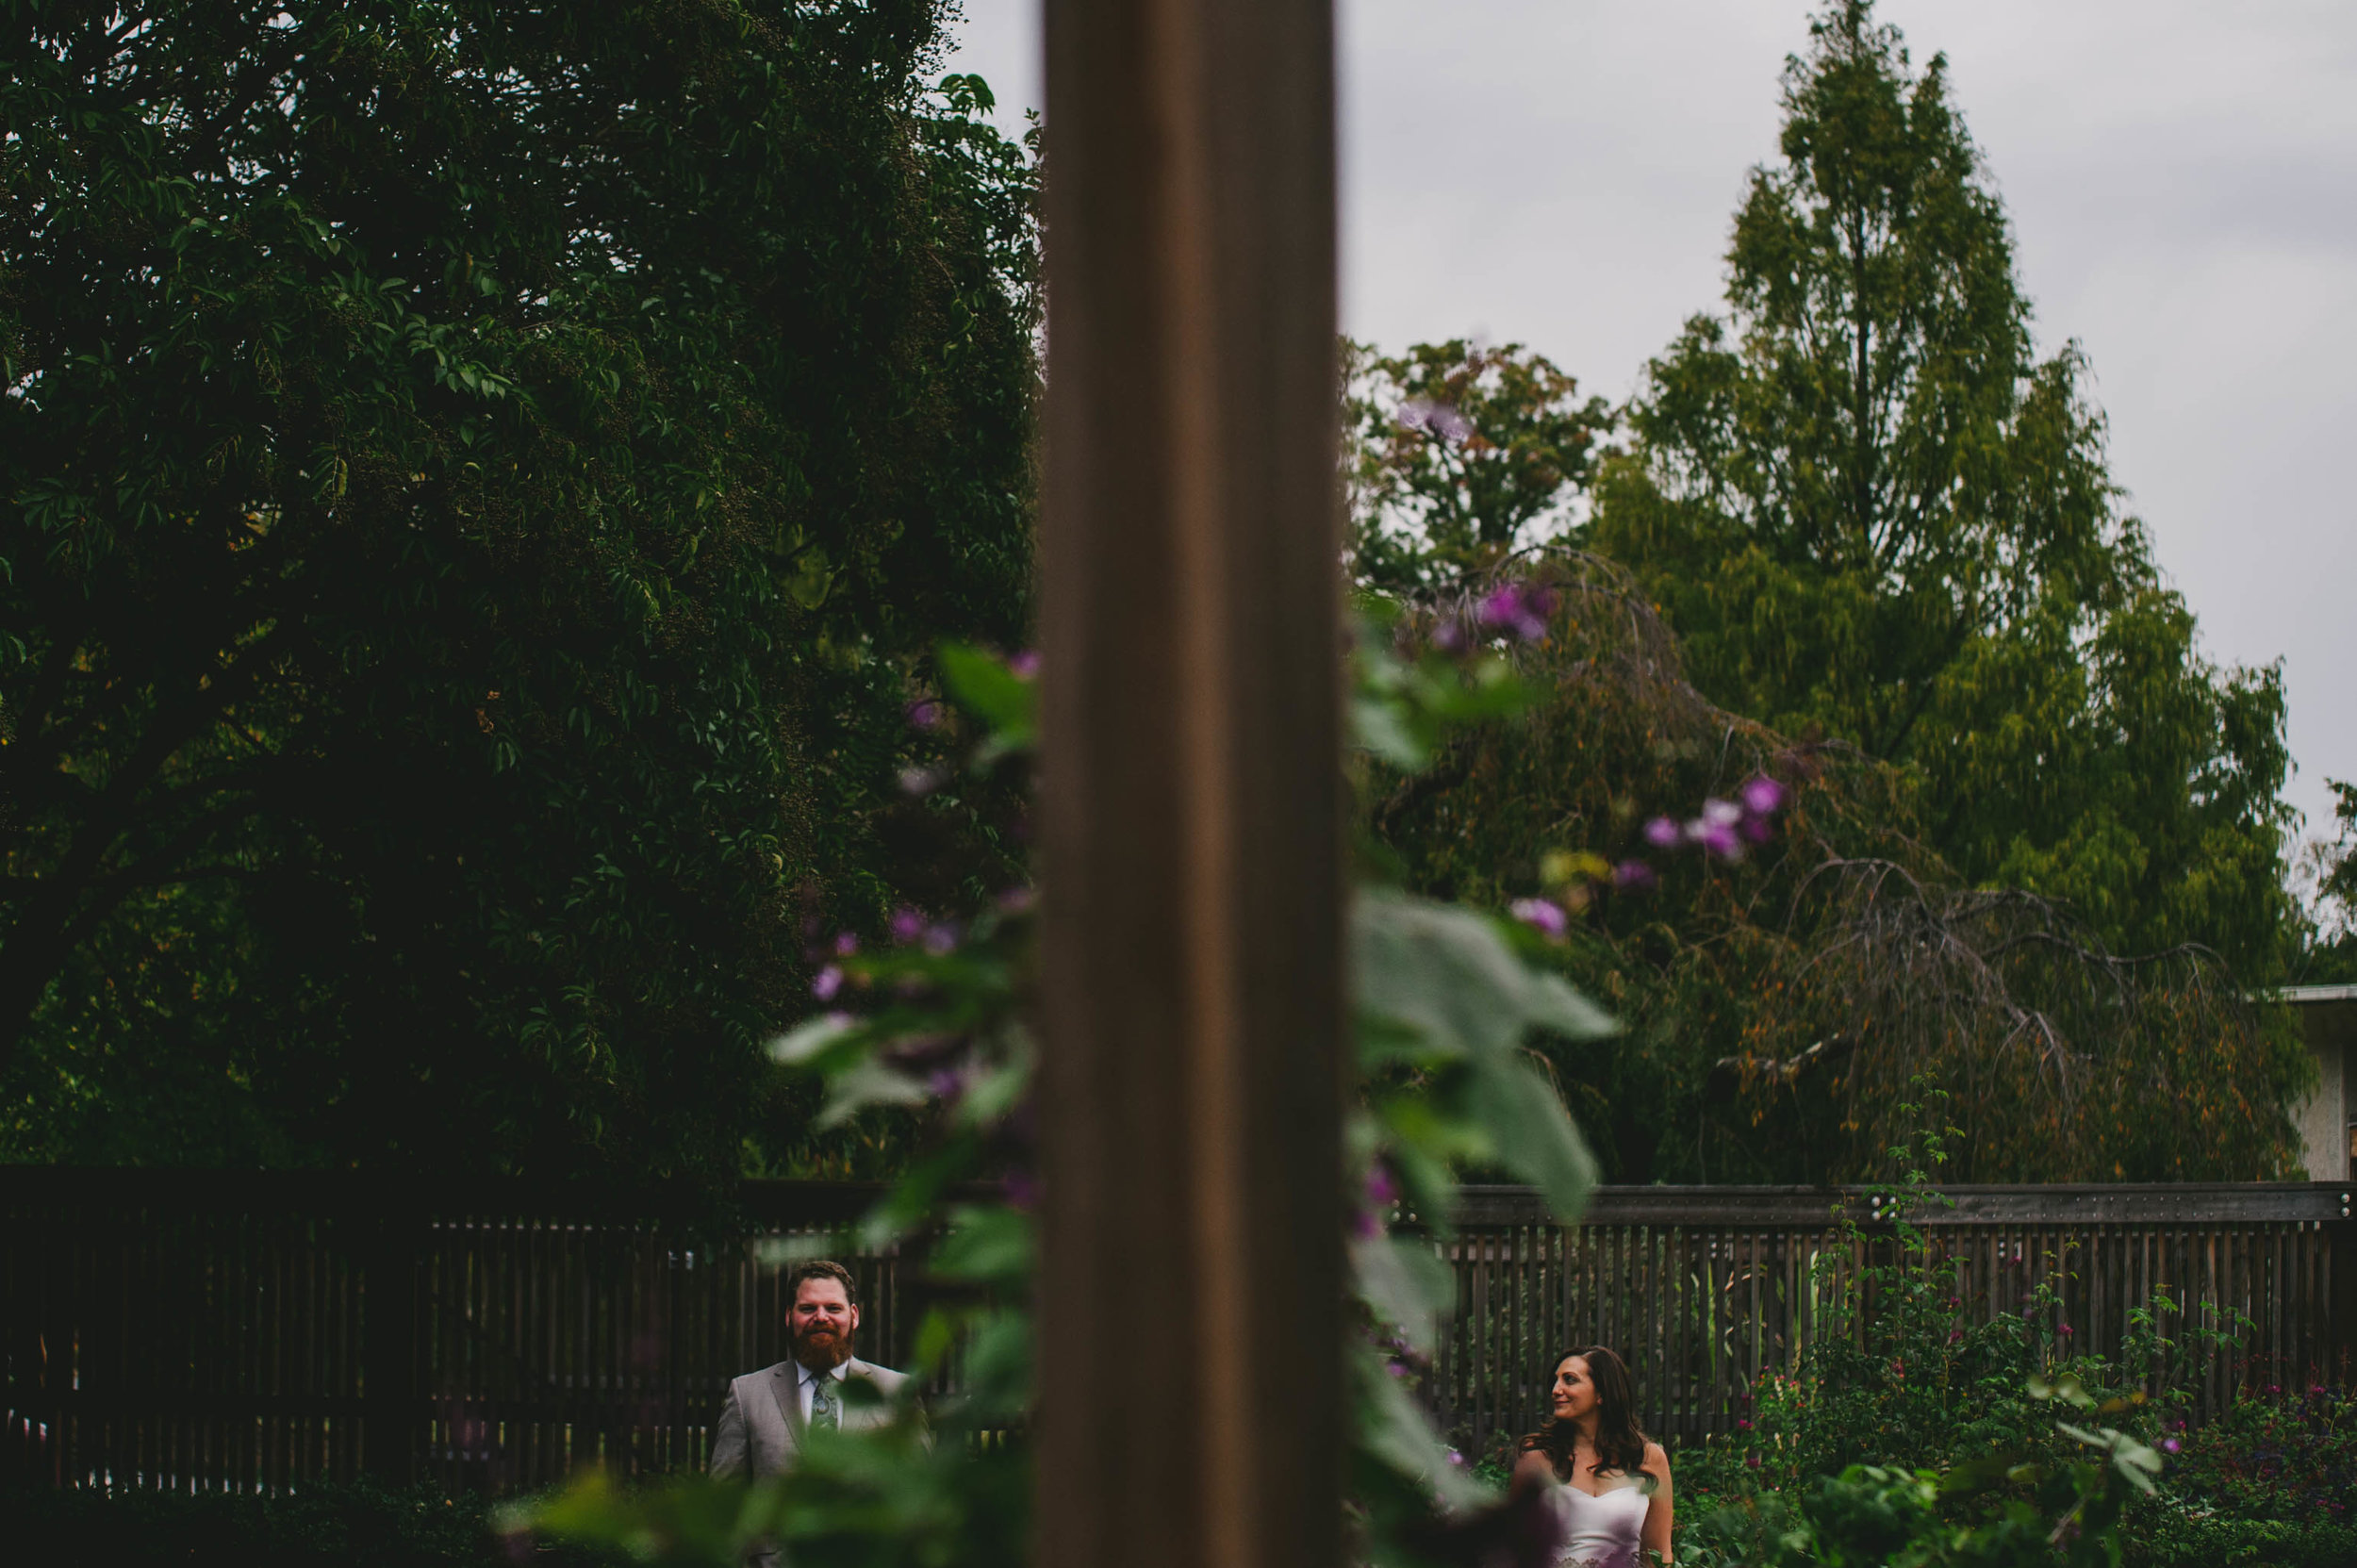 bride looking at her groom in the gardens after their national arboretum wedding in washington dc